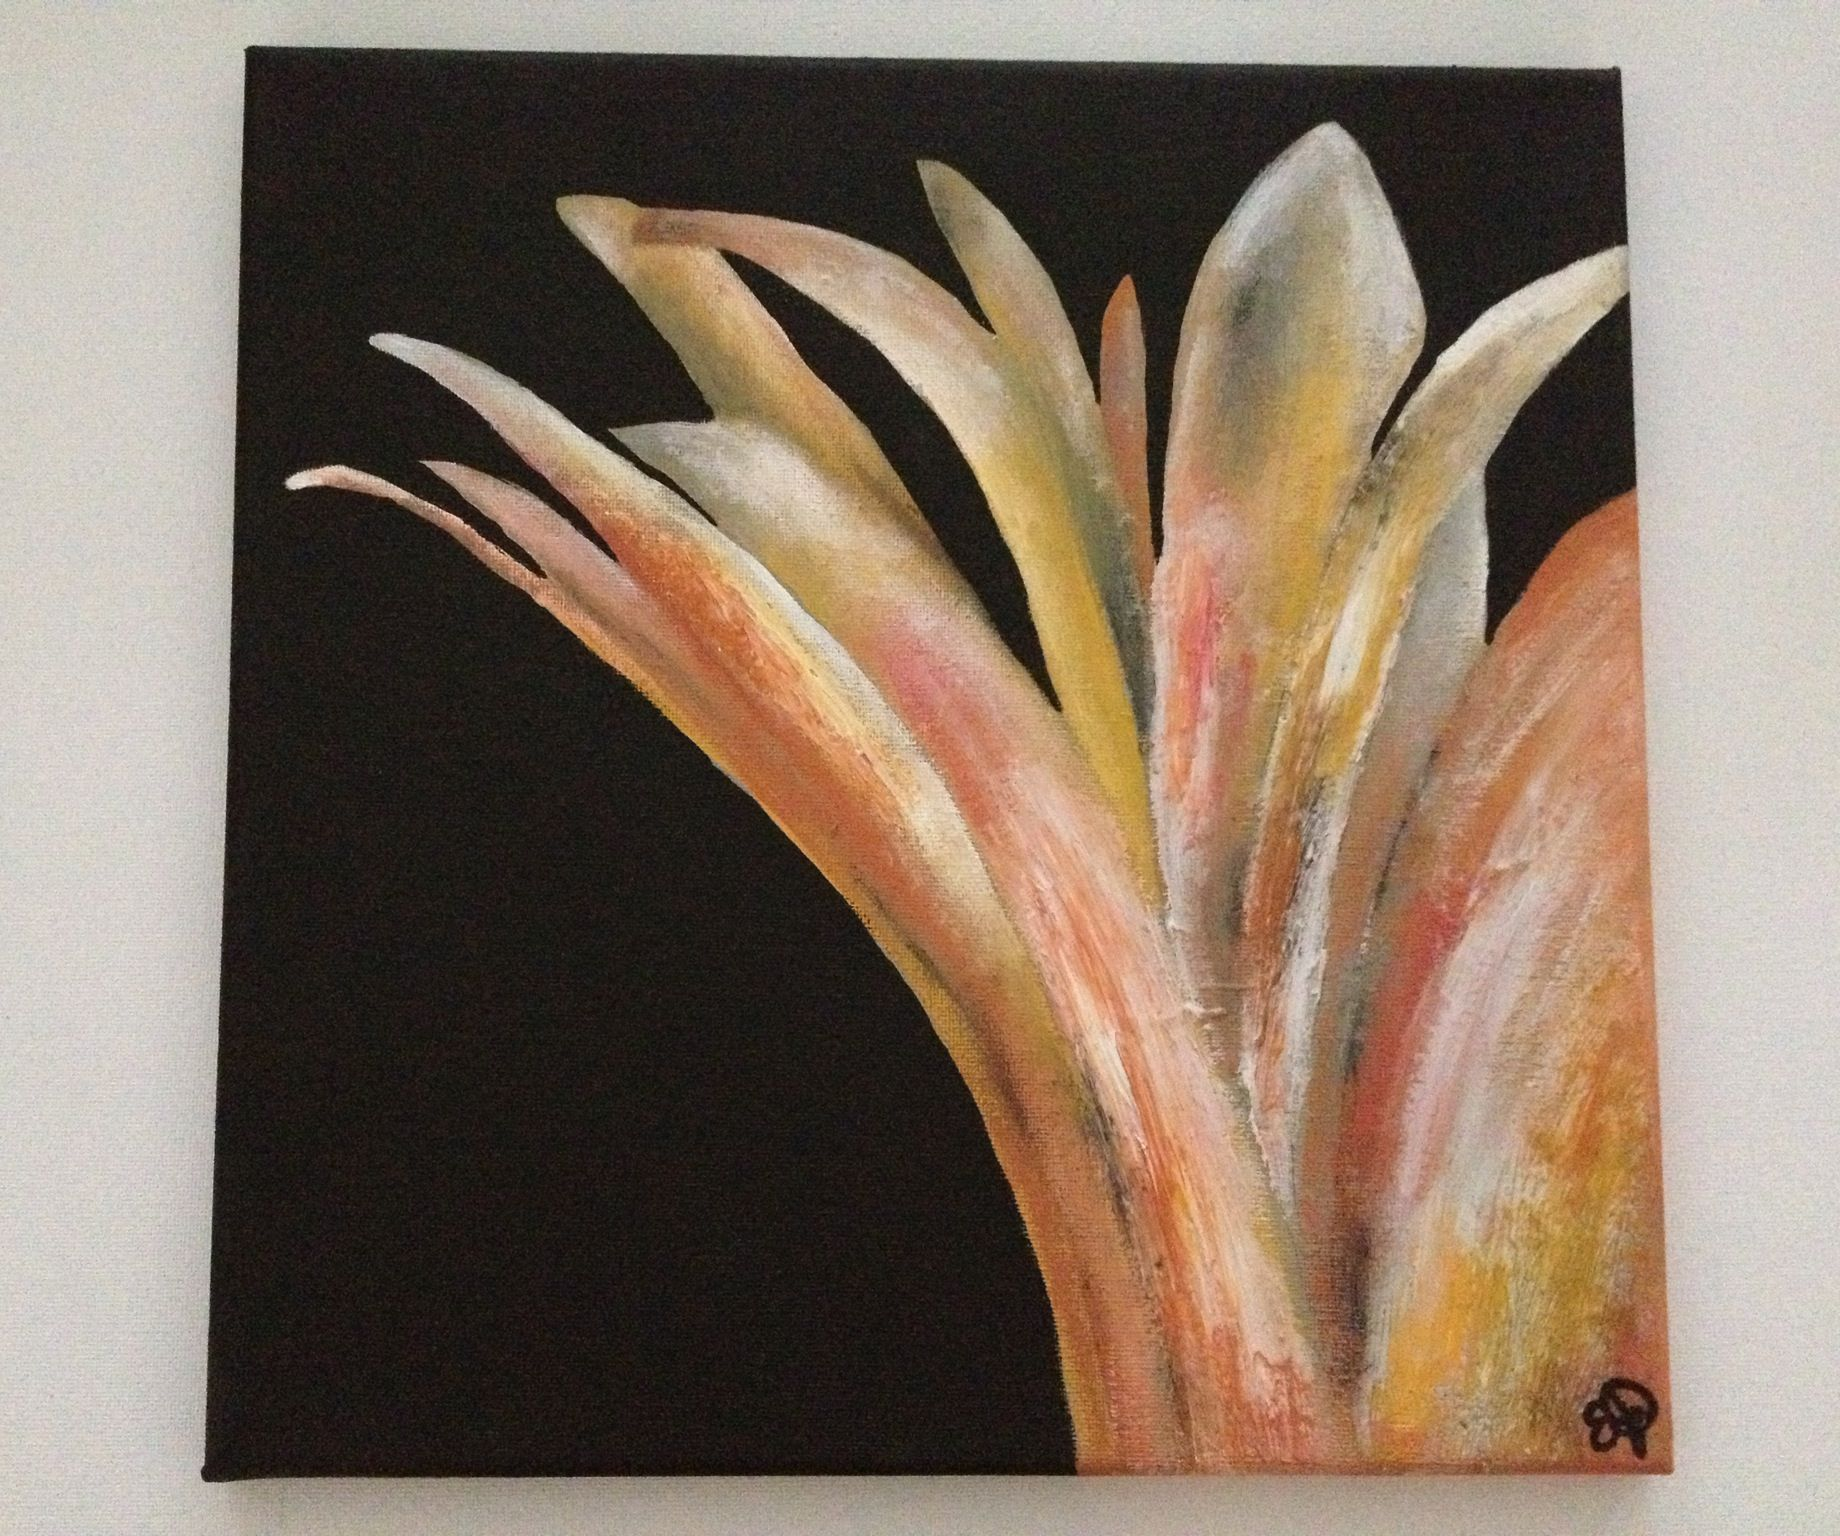 Soothing Petals, by Emily Doerr, my painting for sale on Etsy. - EmilysArtandDesign